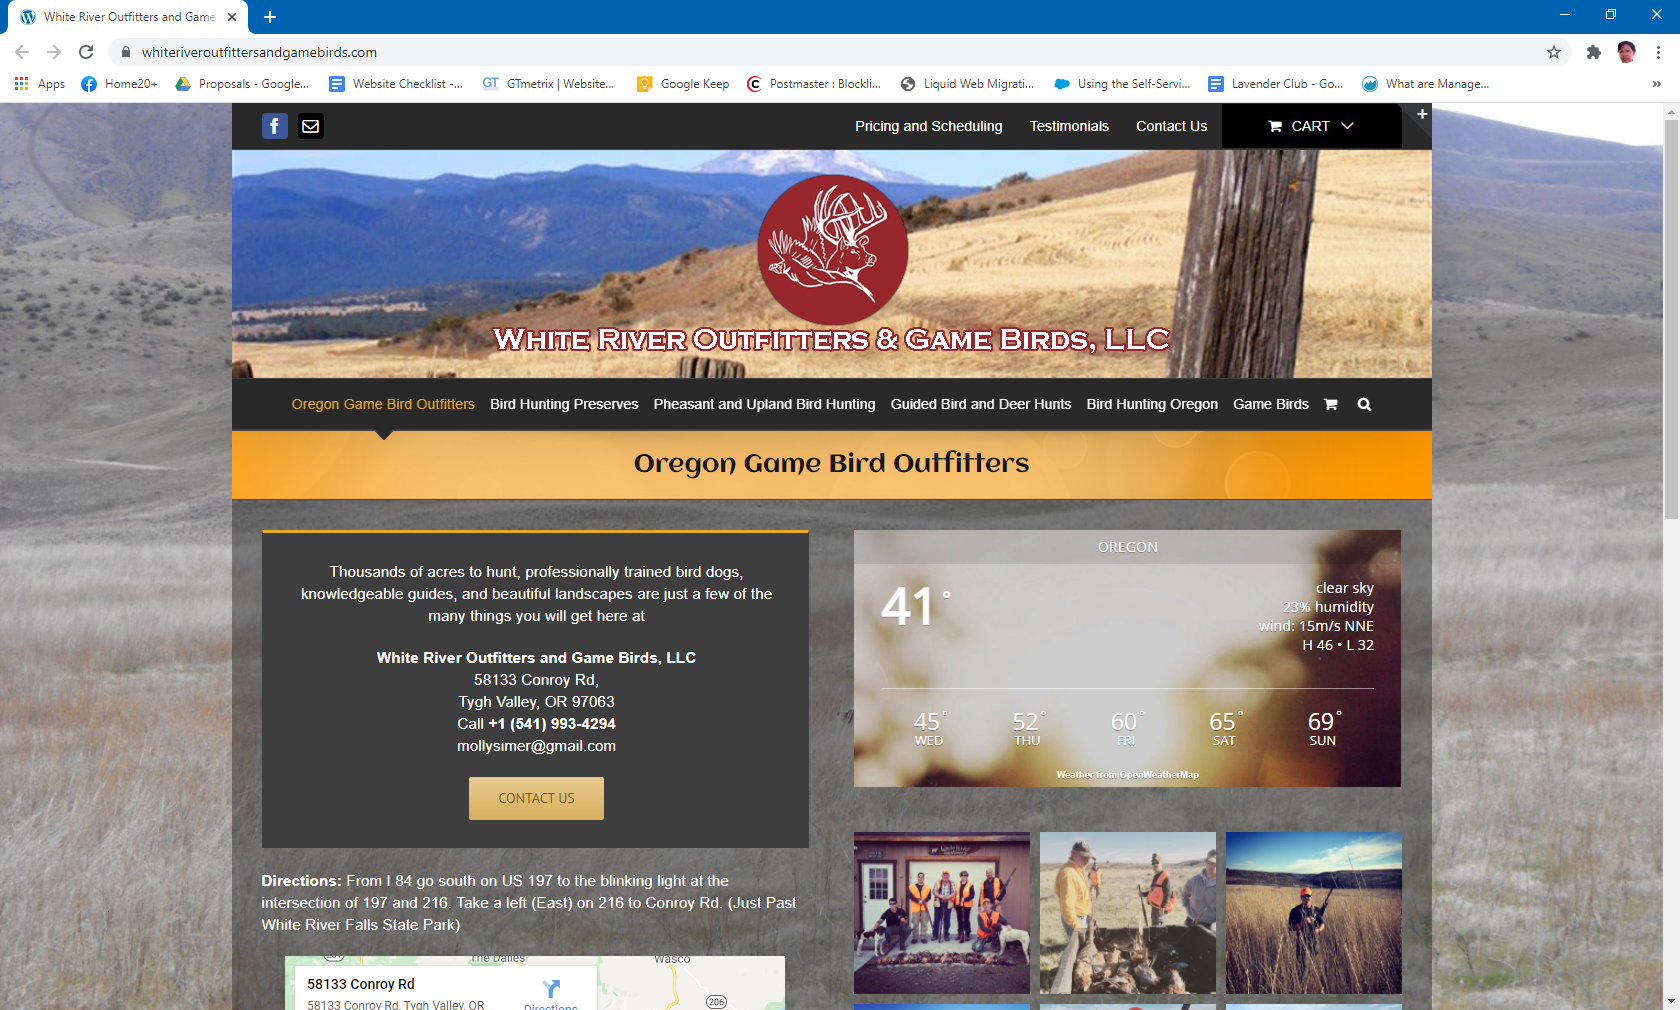 White River Outfitters and Game Birds, LLC